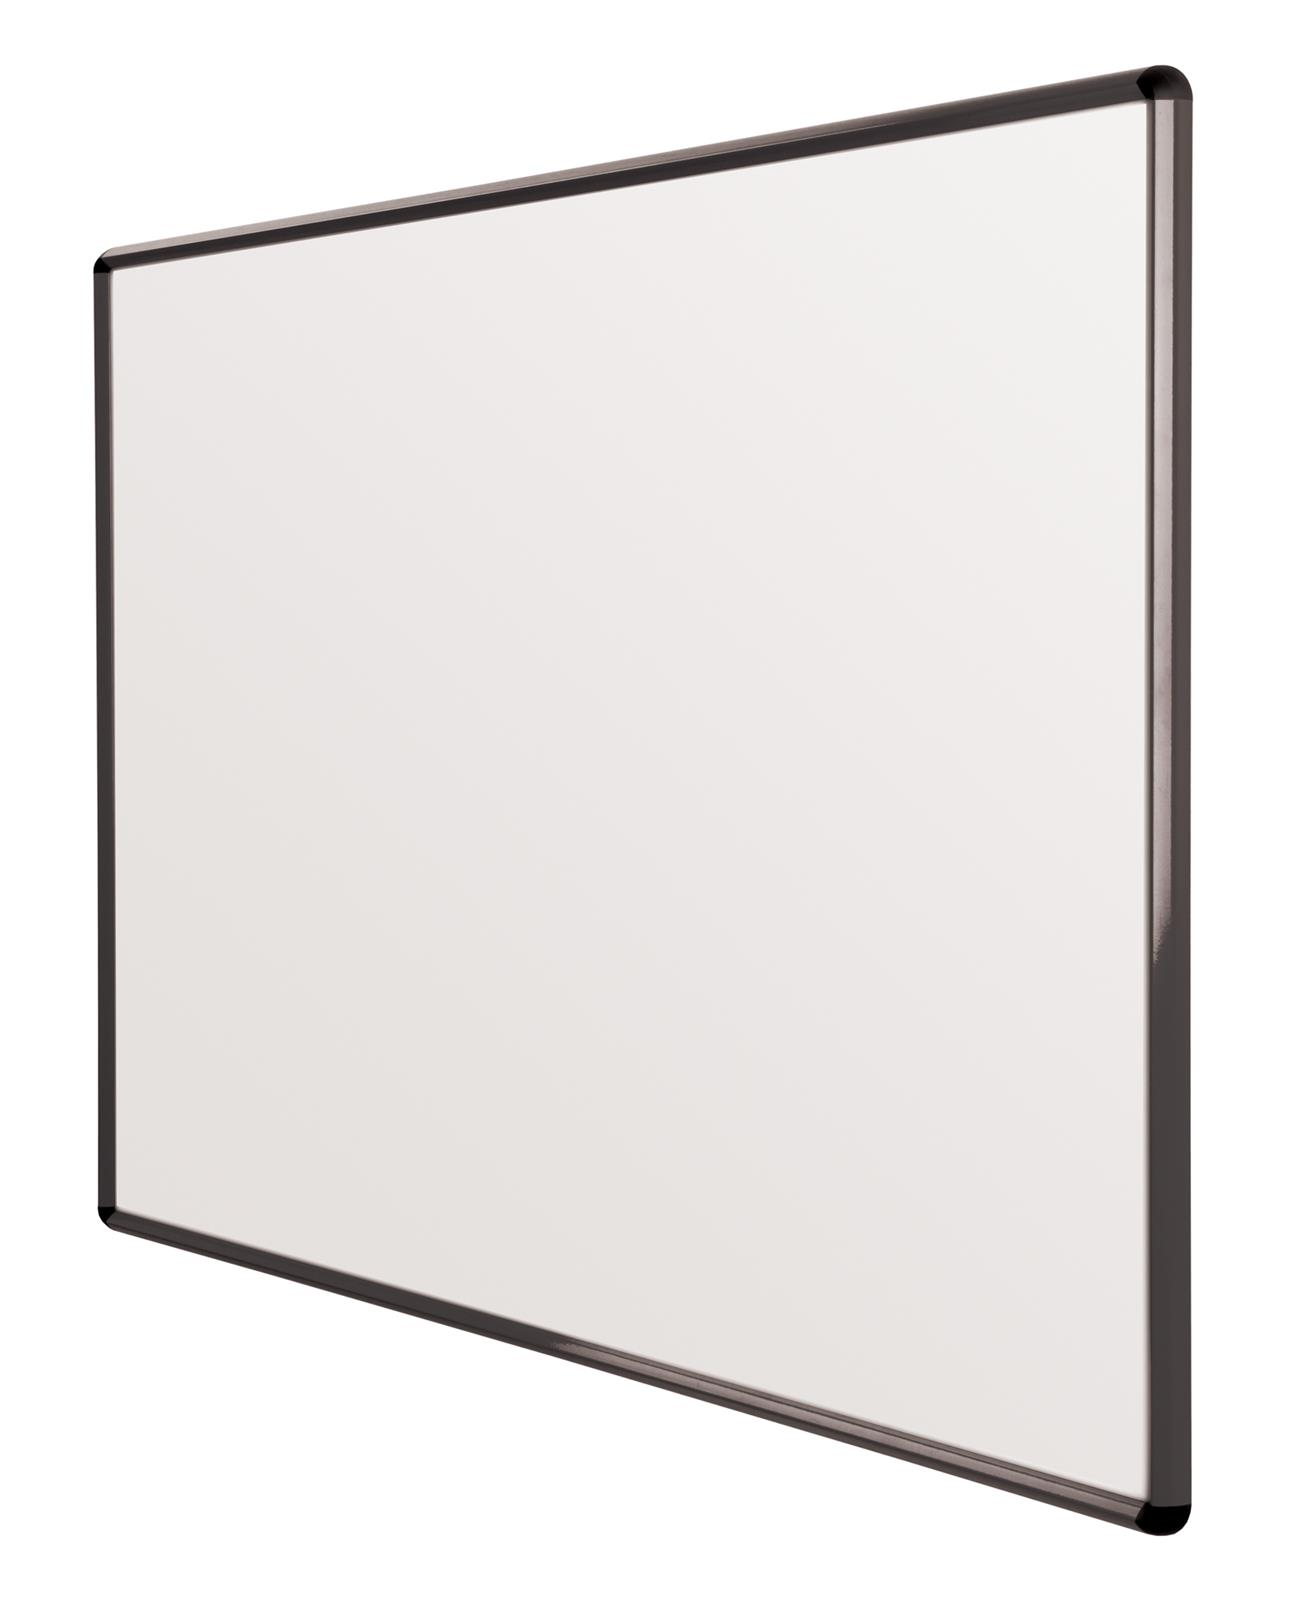 WriteOn Shield Design Projection Whiteboards